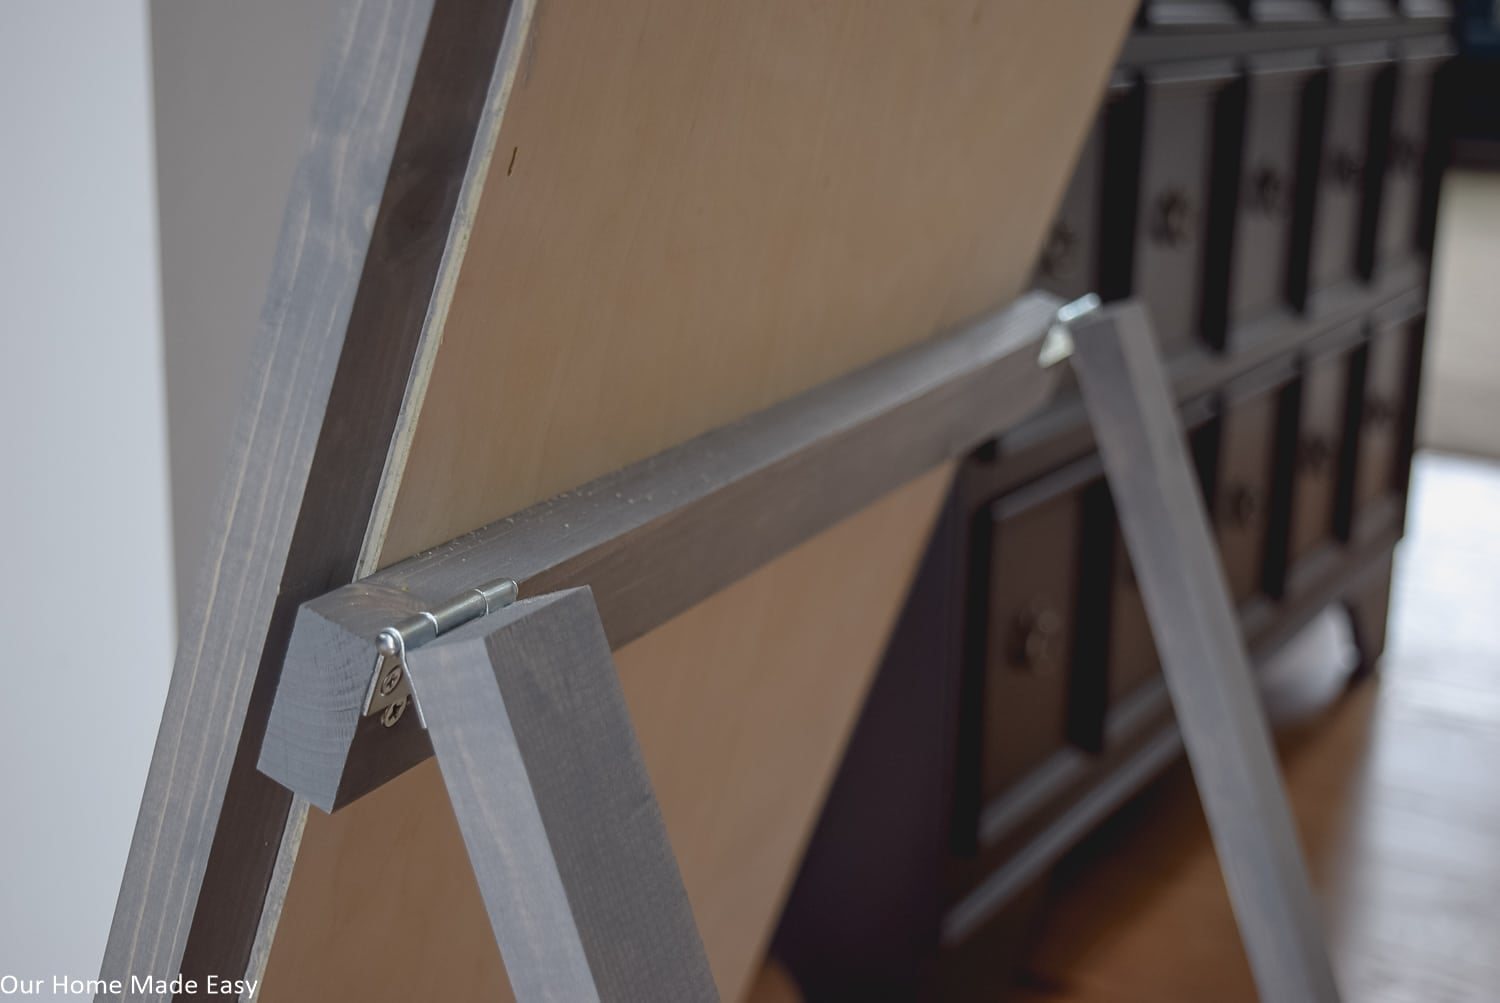 These support legs attached with hinges will make standing this sign up on your front porch easy and convenient.